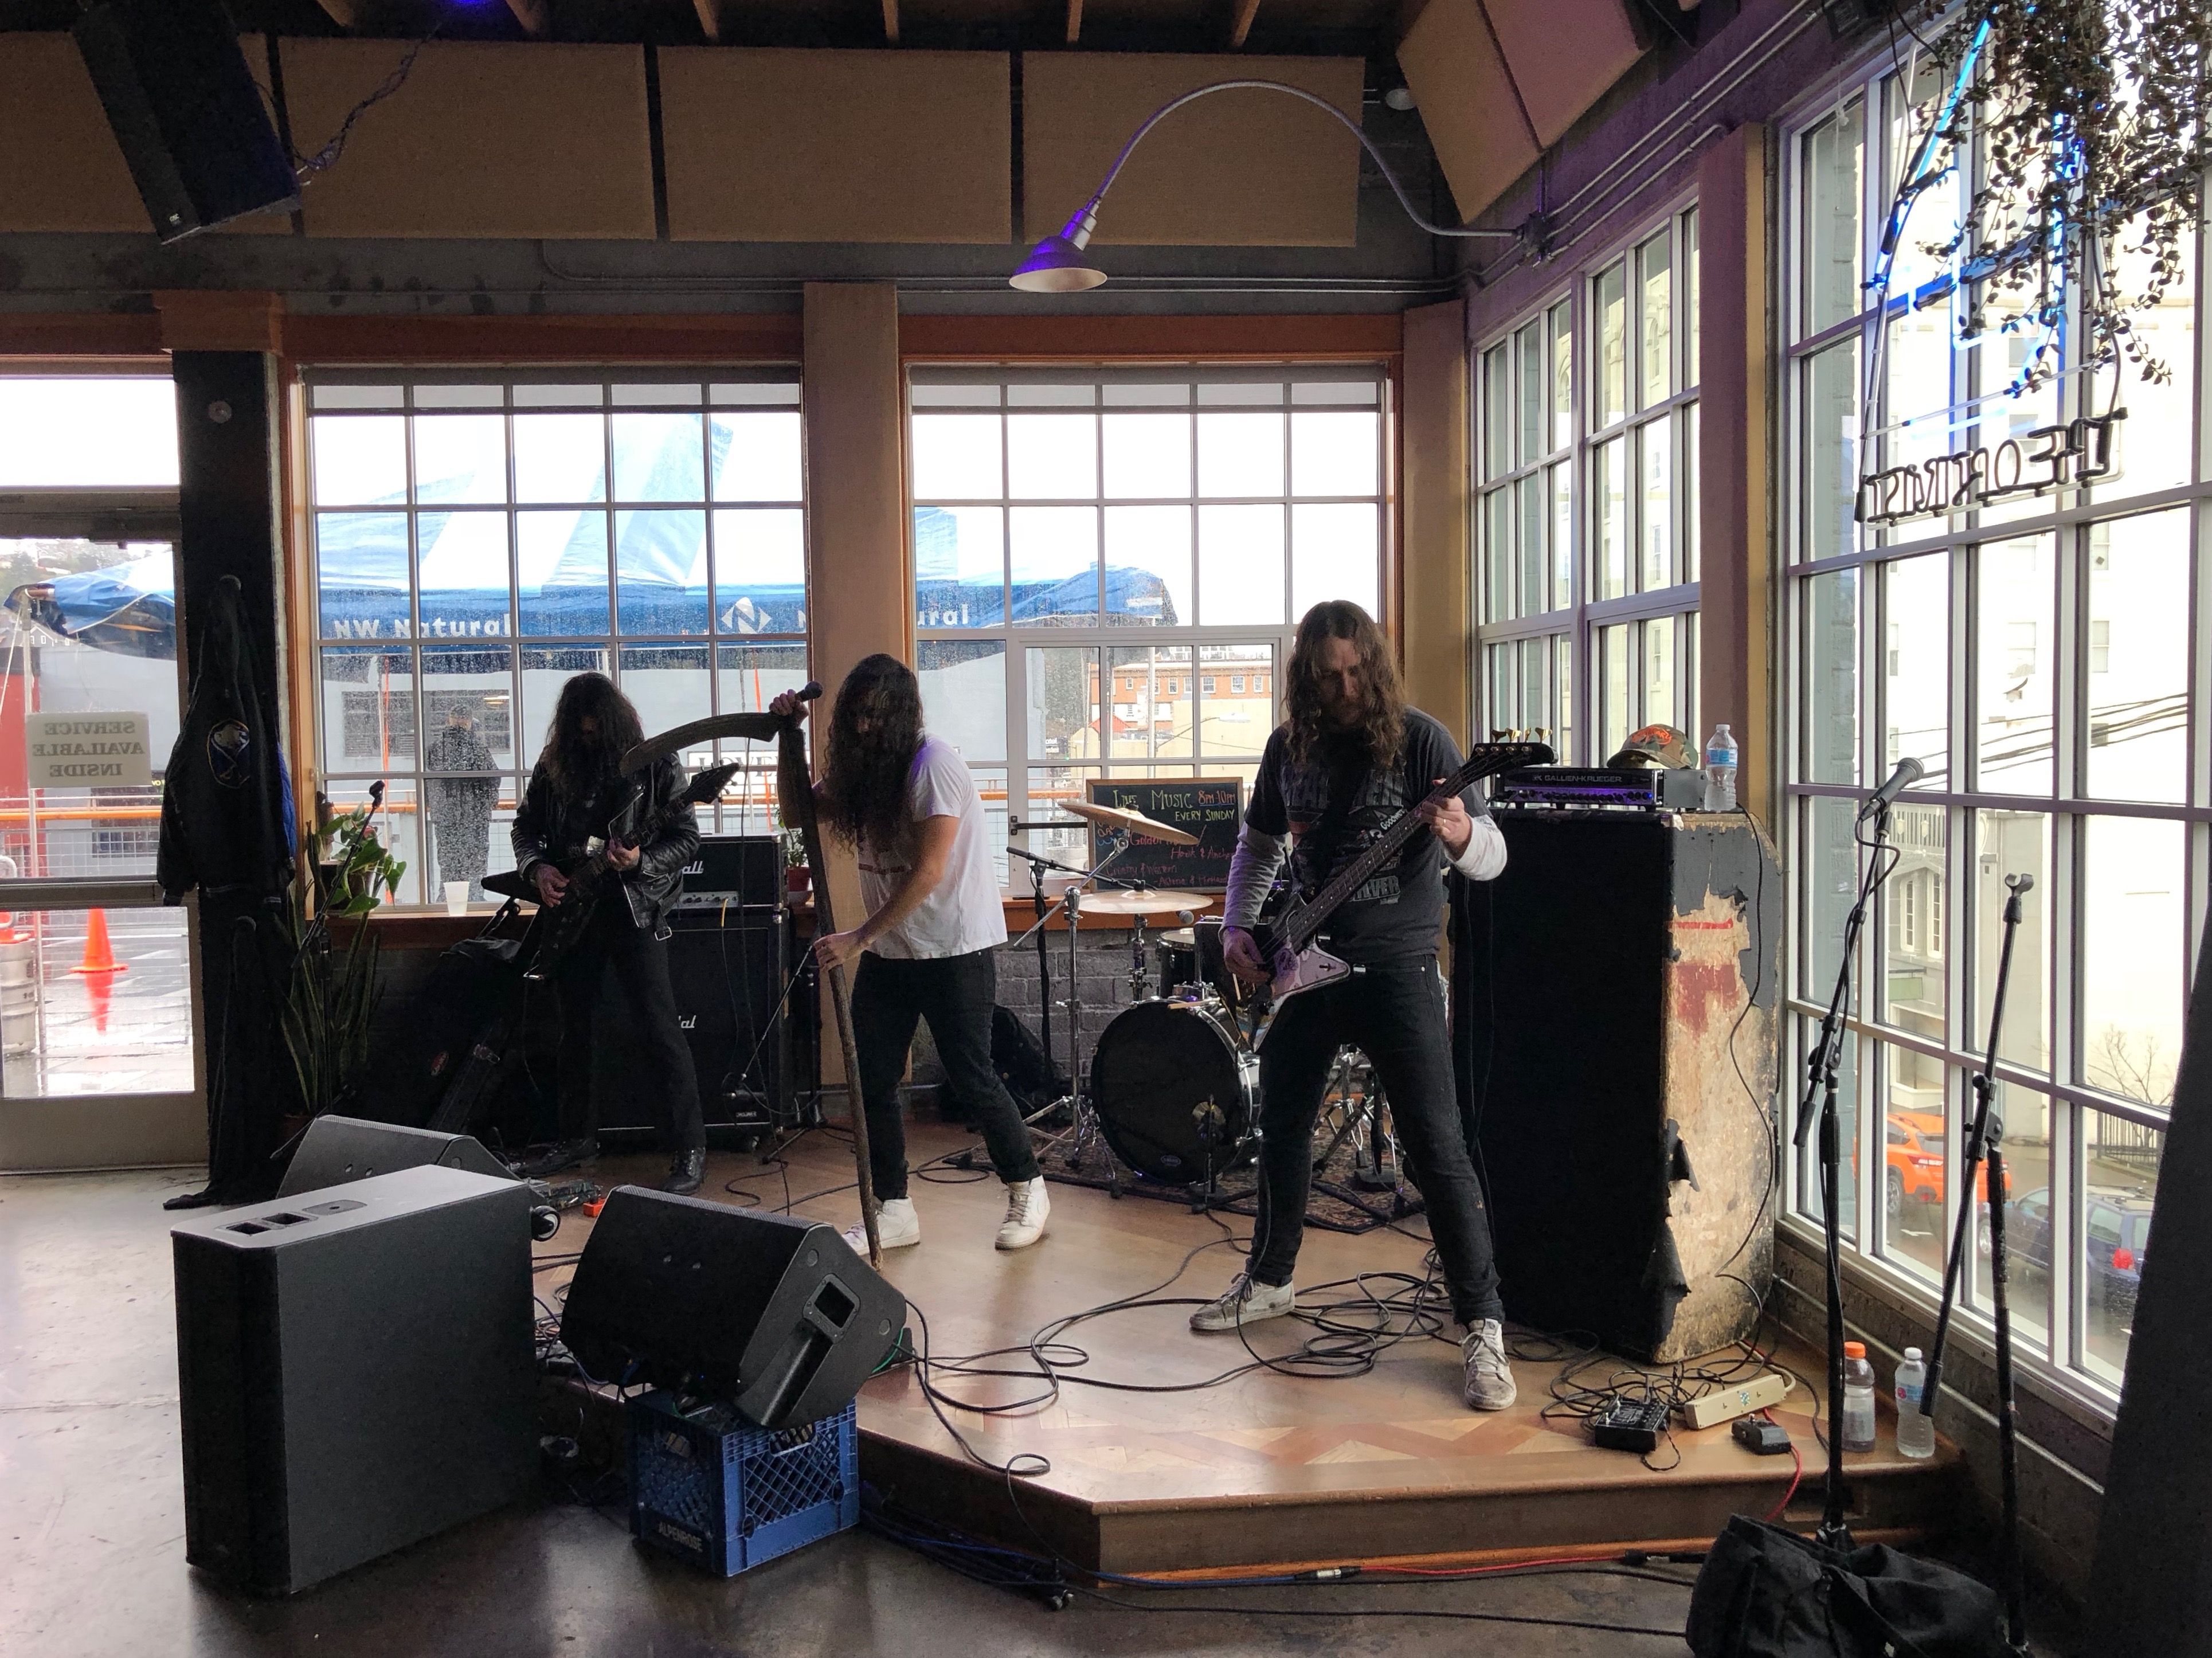 A metal band performs during the 2018 Festival of Dark Arts at Fort George Brewery.